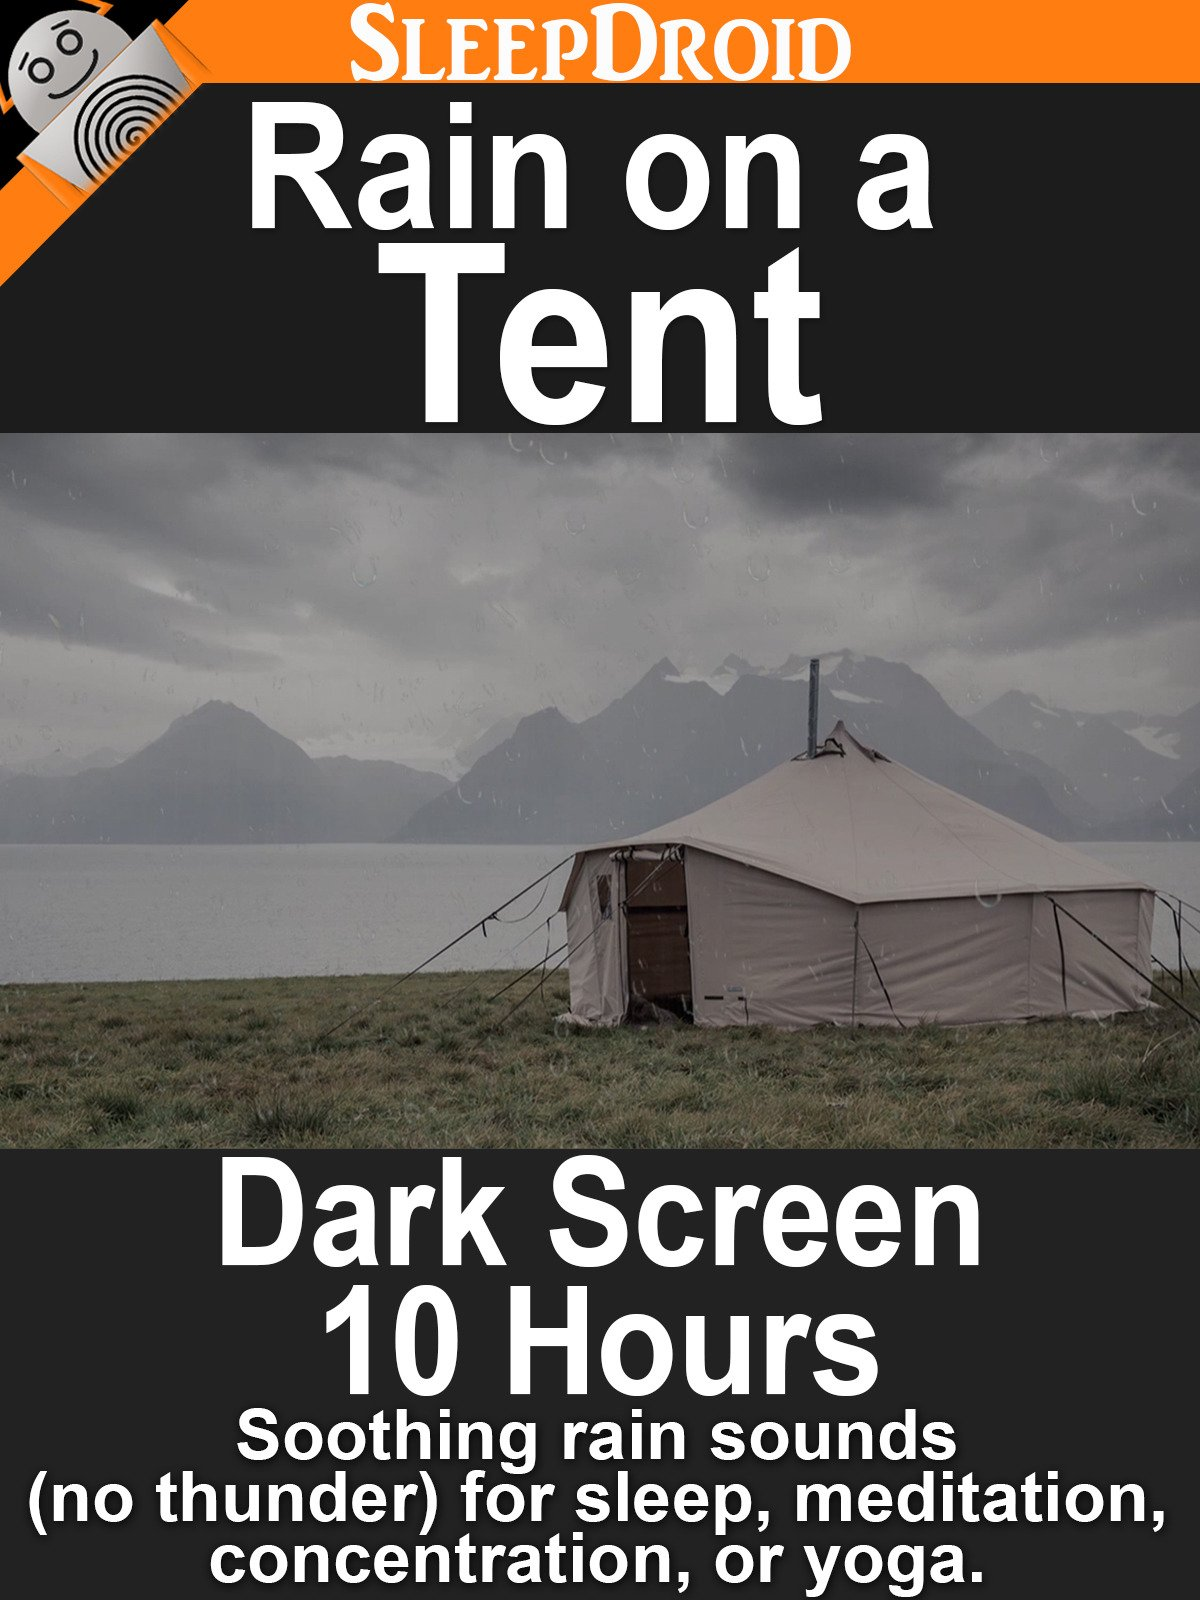 Rain on a Tent: Dark Screen 10 Hours Soothing Rain Sounds (No Thunder) for Sleep, Meditation, Concentration, or Yoga.